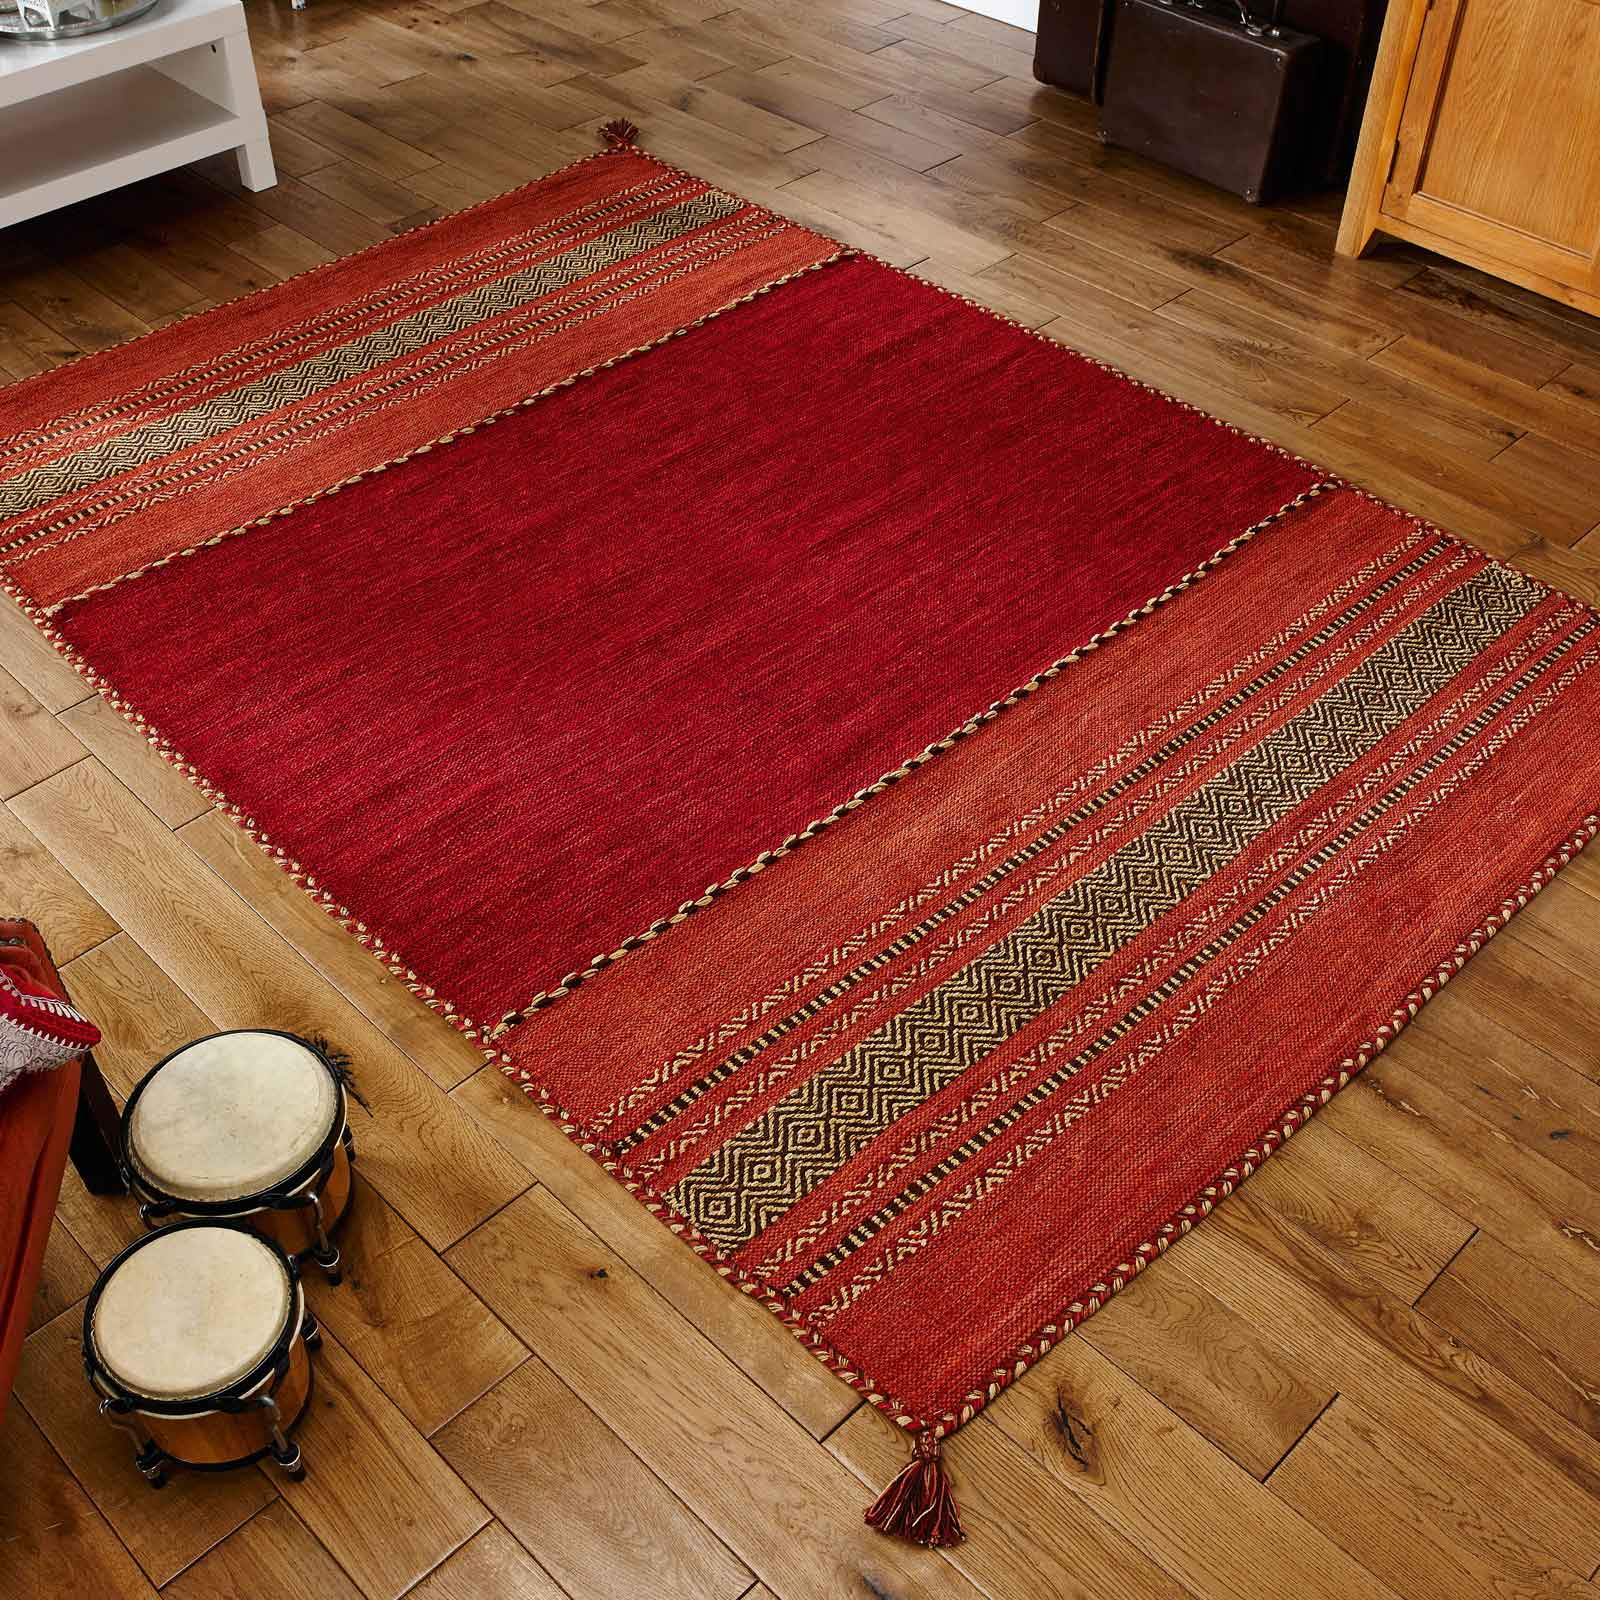 red kilim rug on wooden floor